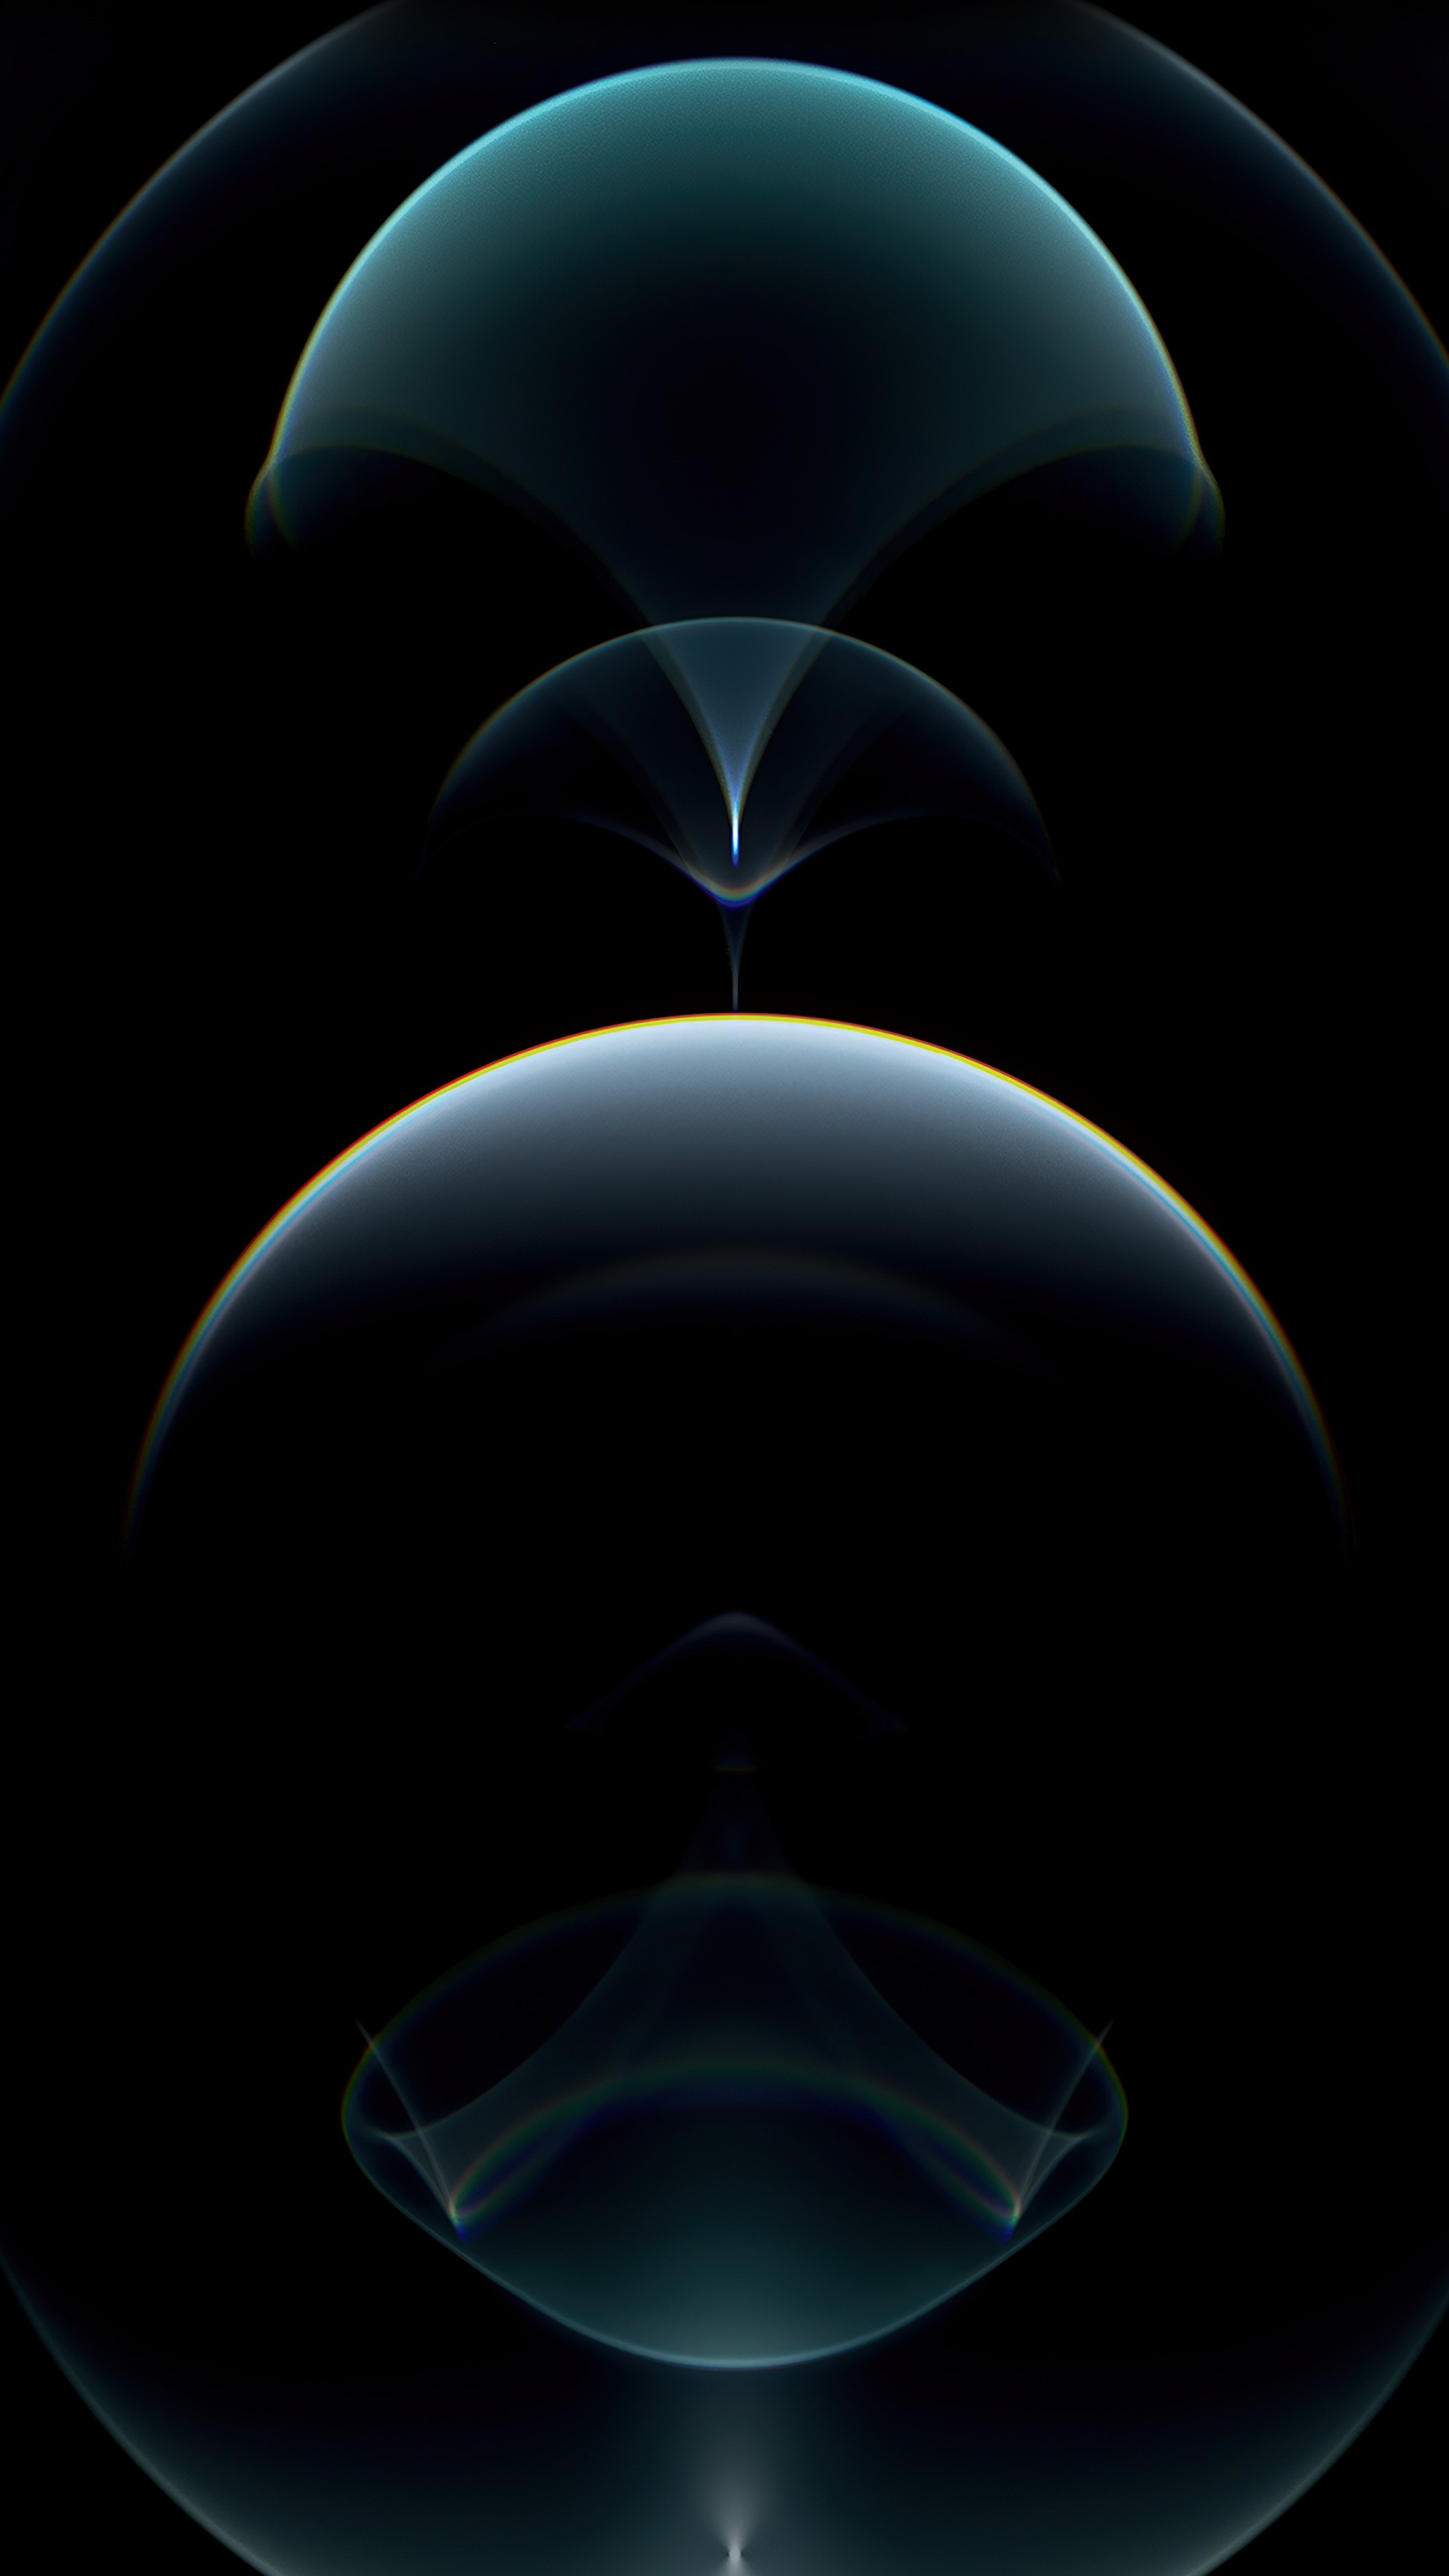 Wallpaper Iphone 12 Pro Silver Abstract Apple October 2020 Event 4k Os 23104